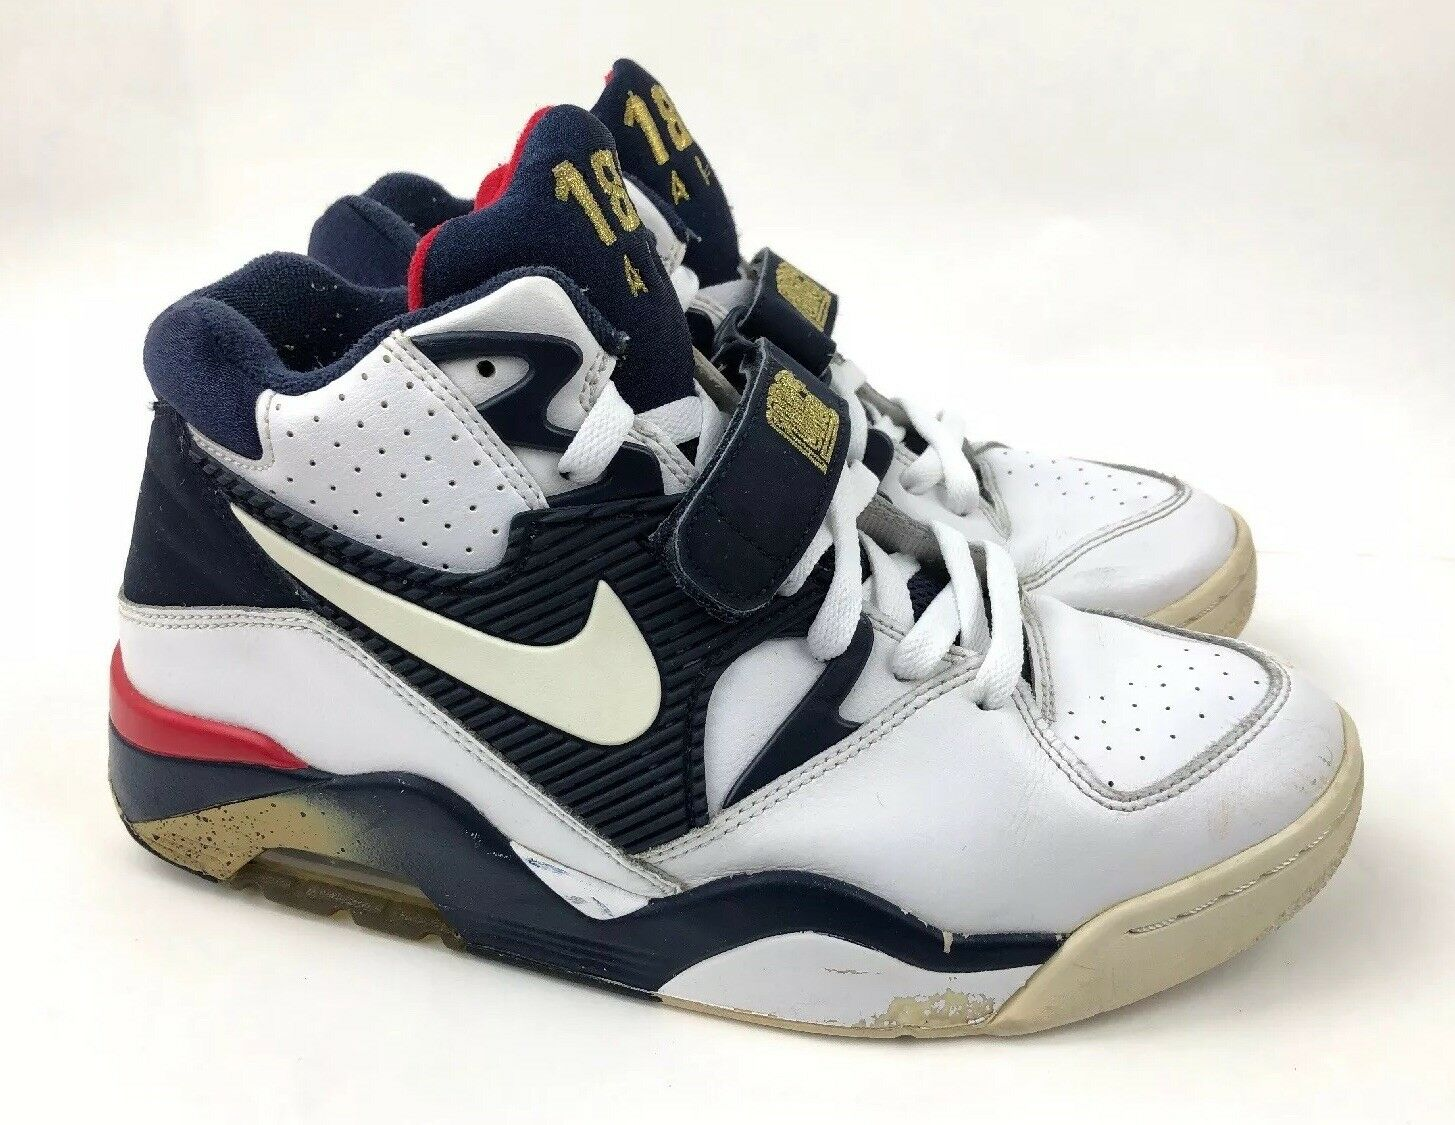 ce88399d89 NIKE AIR FORCE 180 Olympic Team Charles Barkley 310095-100 Men's US Size 8.5